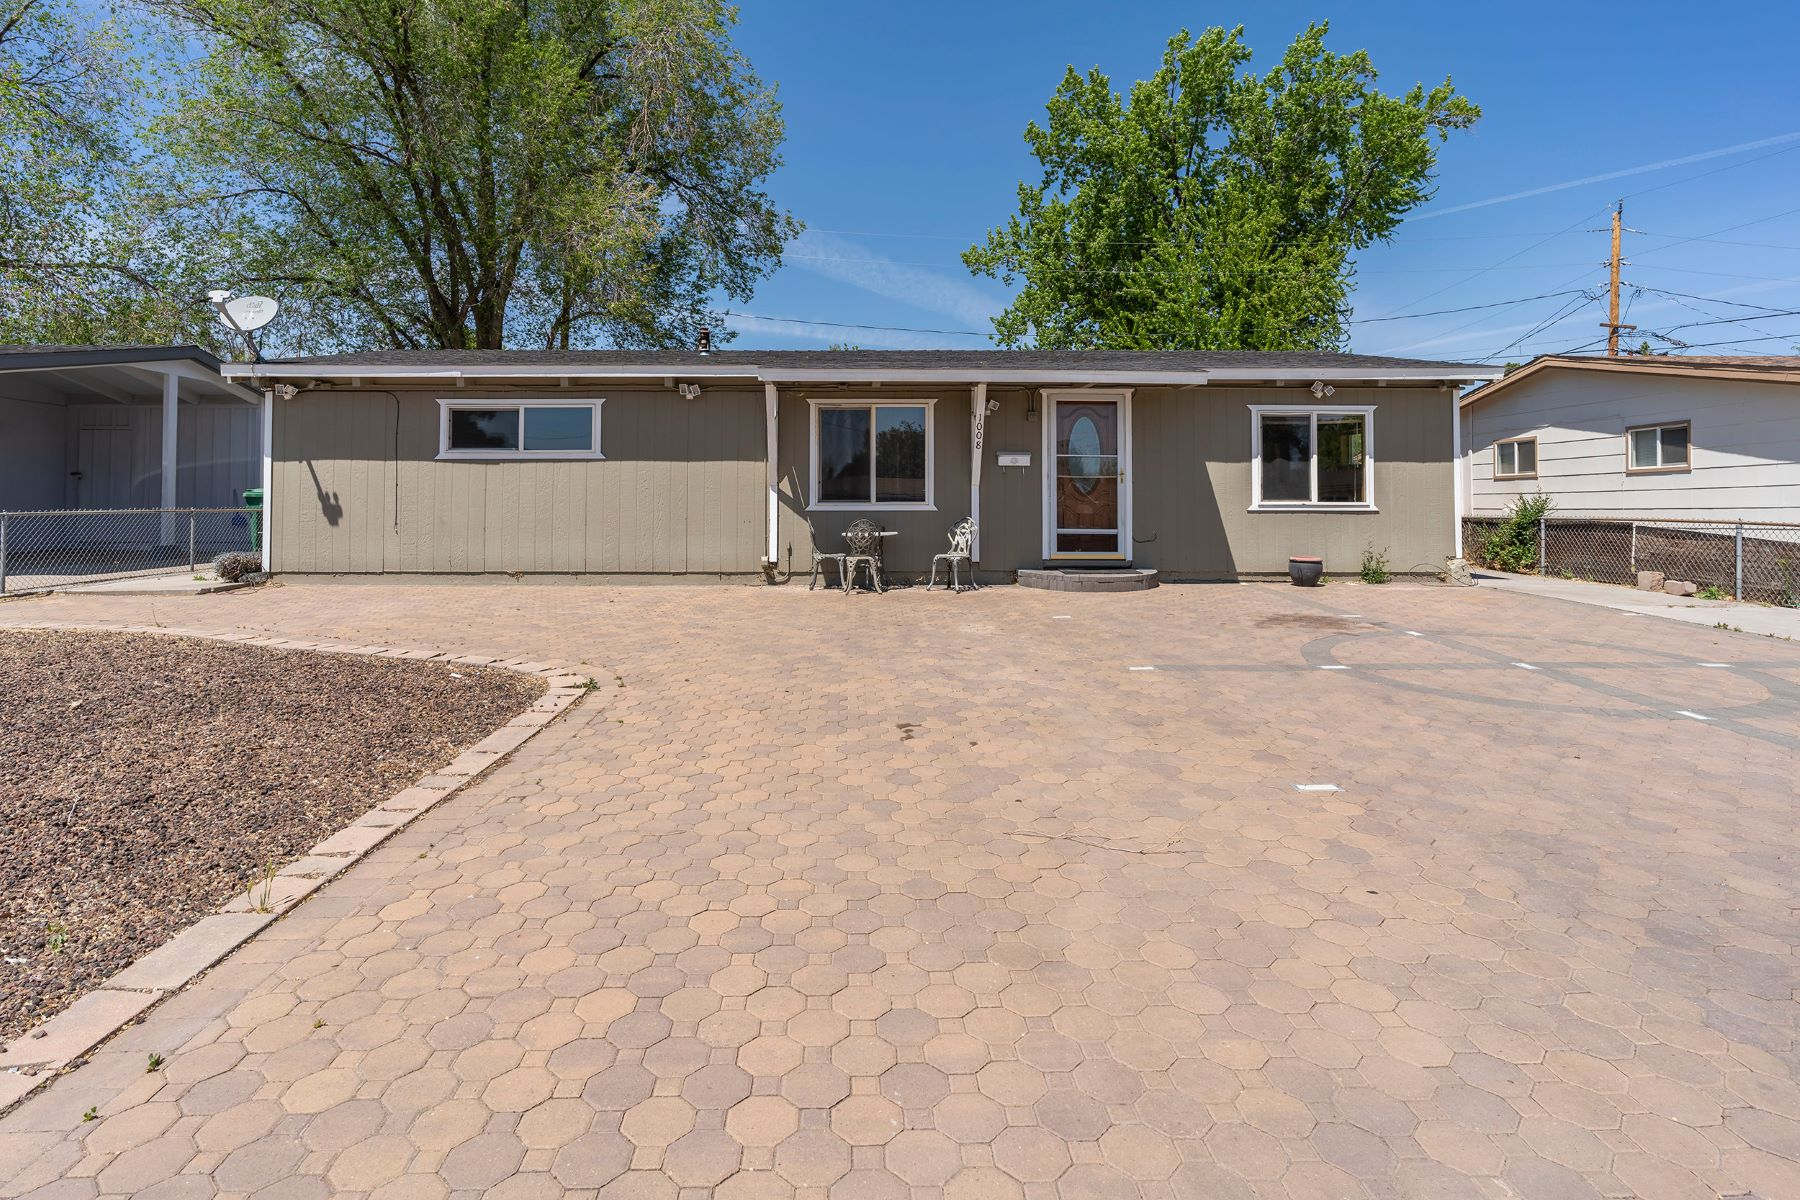 Single Family Homes for Sale at Nestled back in old Sparks 1008 Russel Way Sparks, Nevada 89431 United States